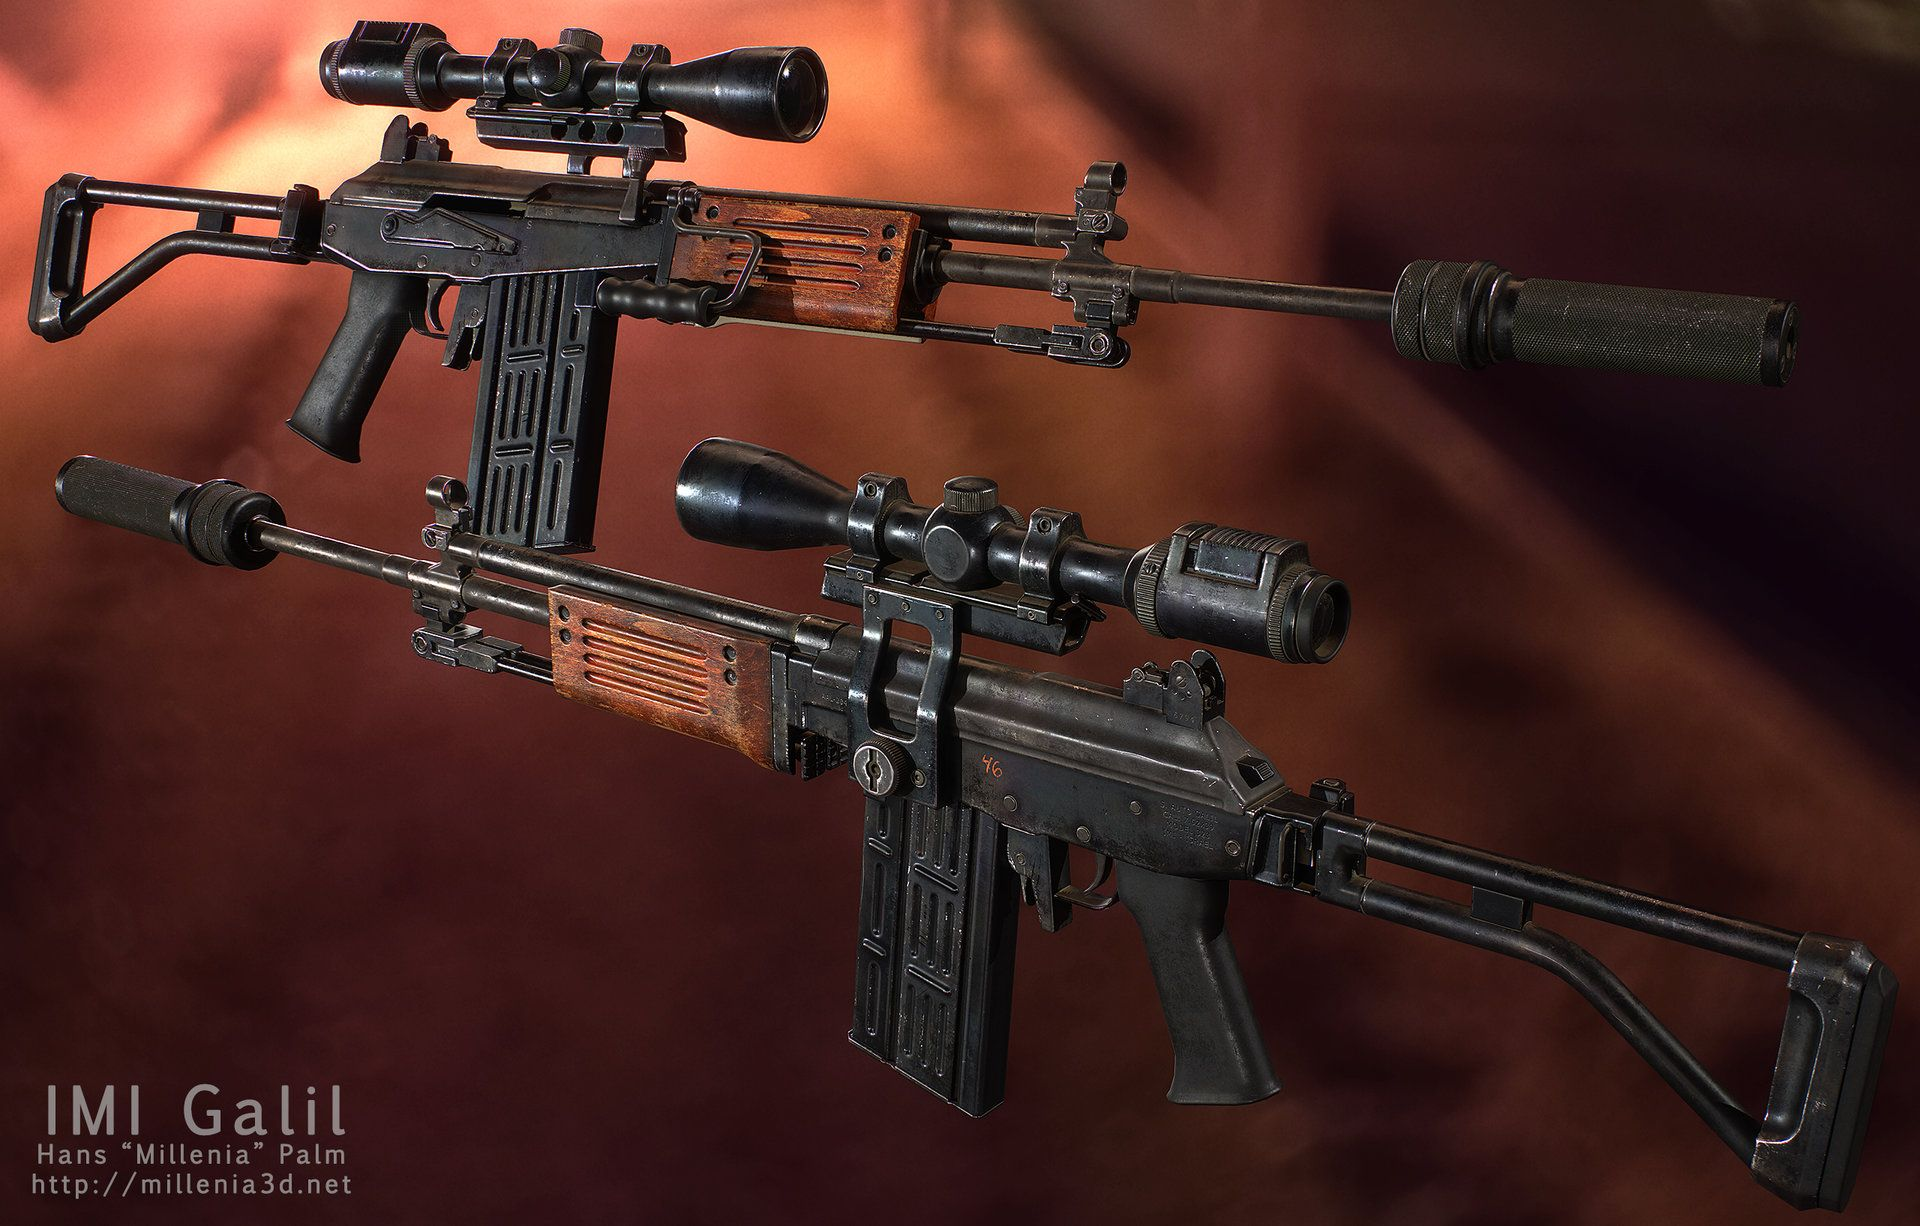 Pin by Dan Greenfield on 3D Props & Weapons - Realistic